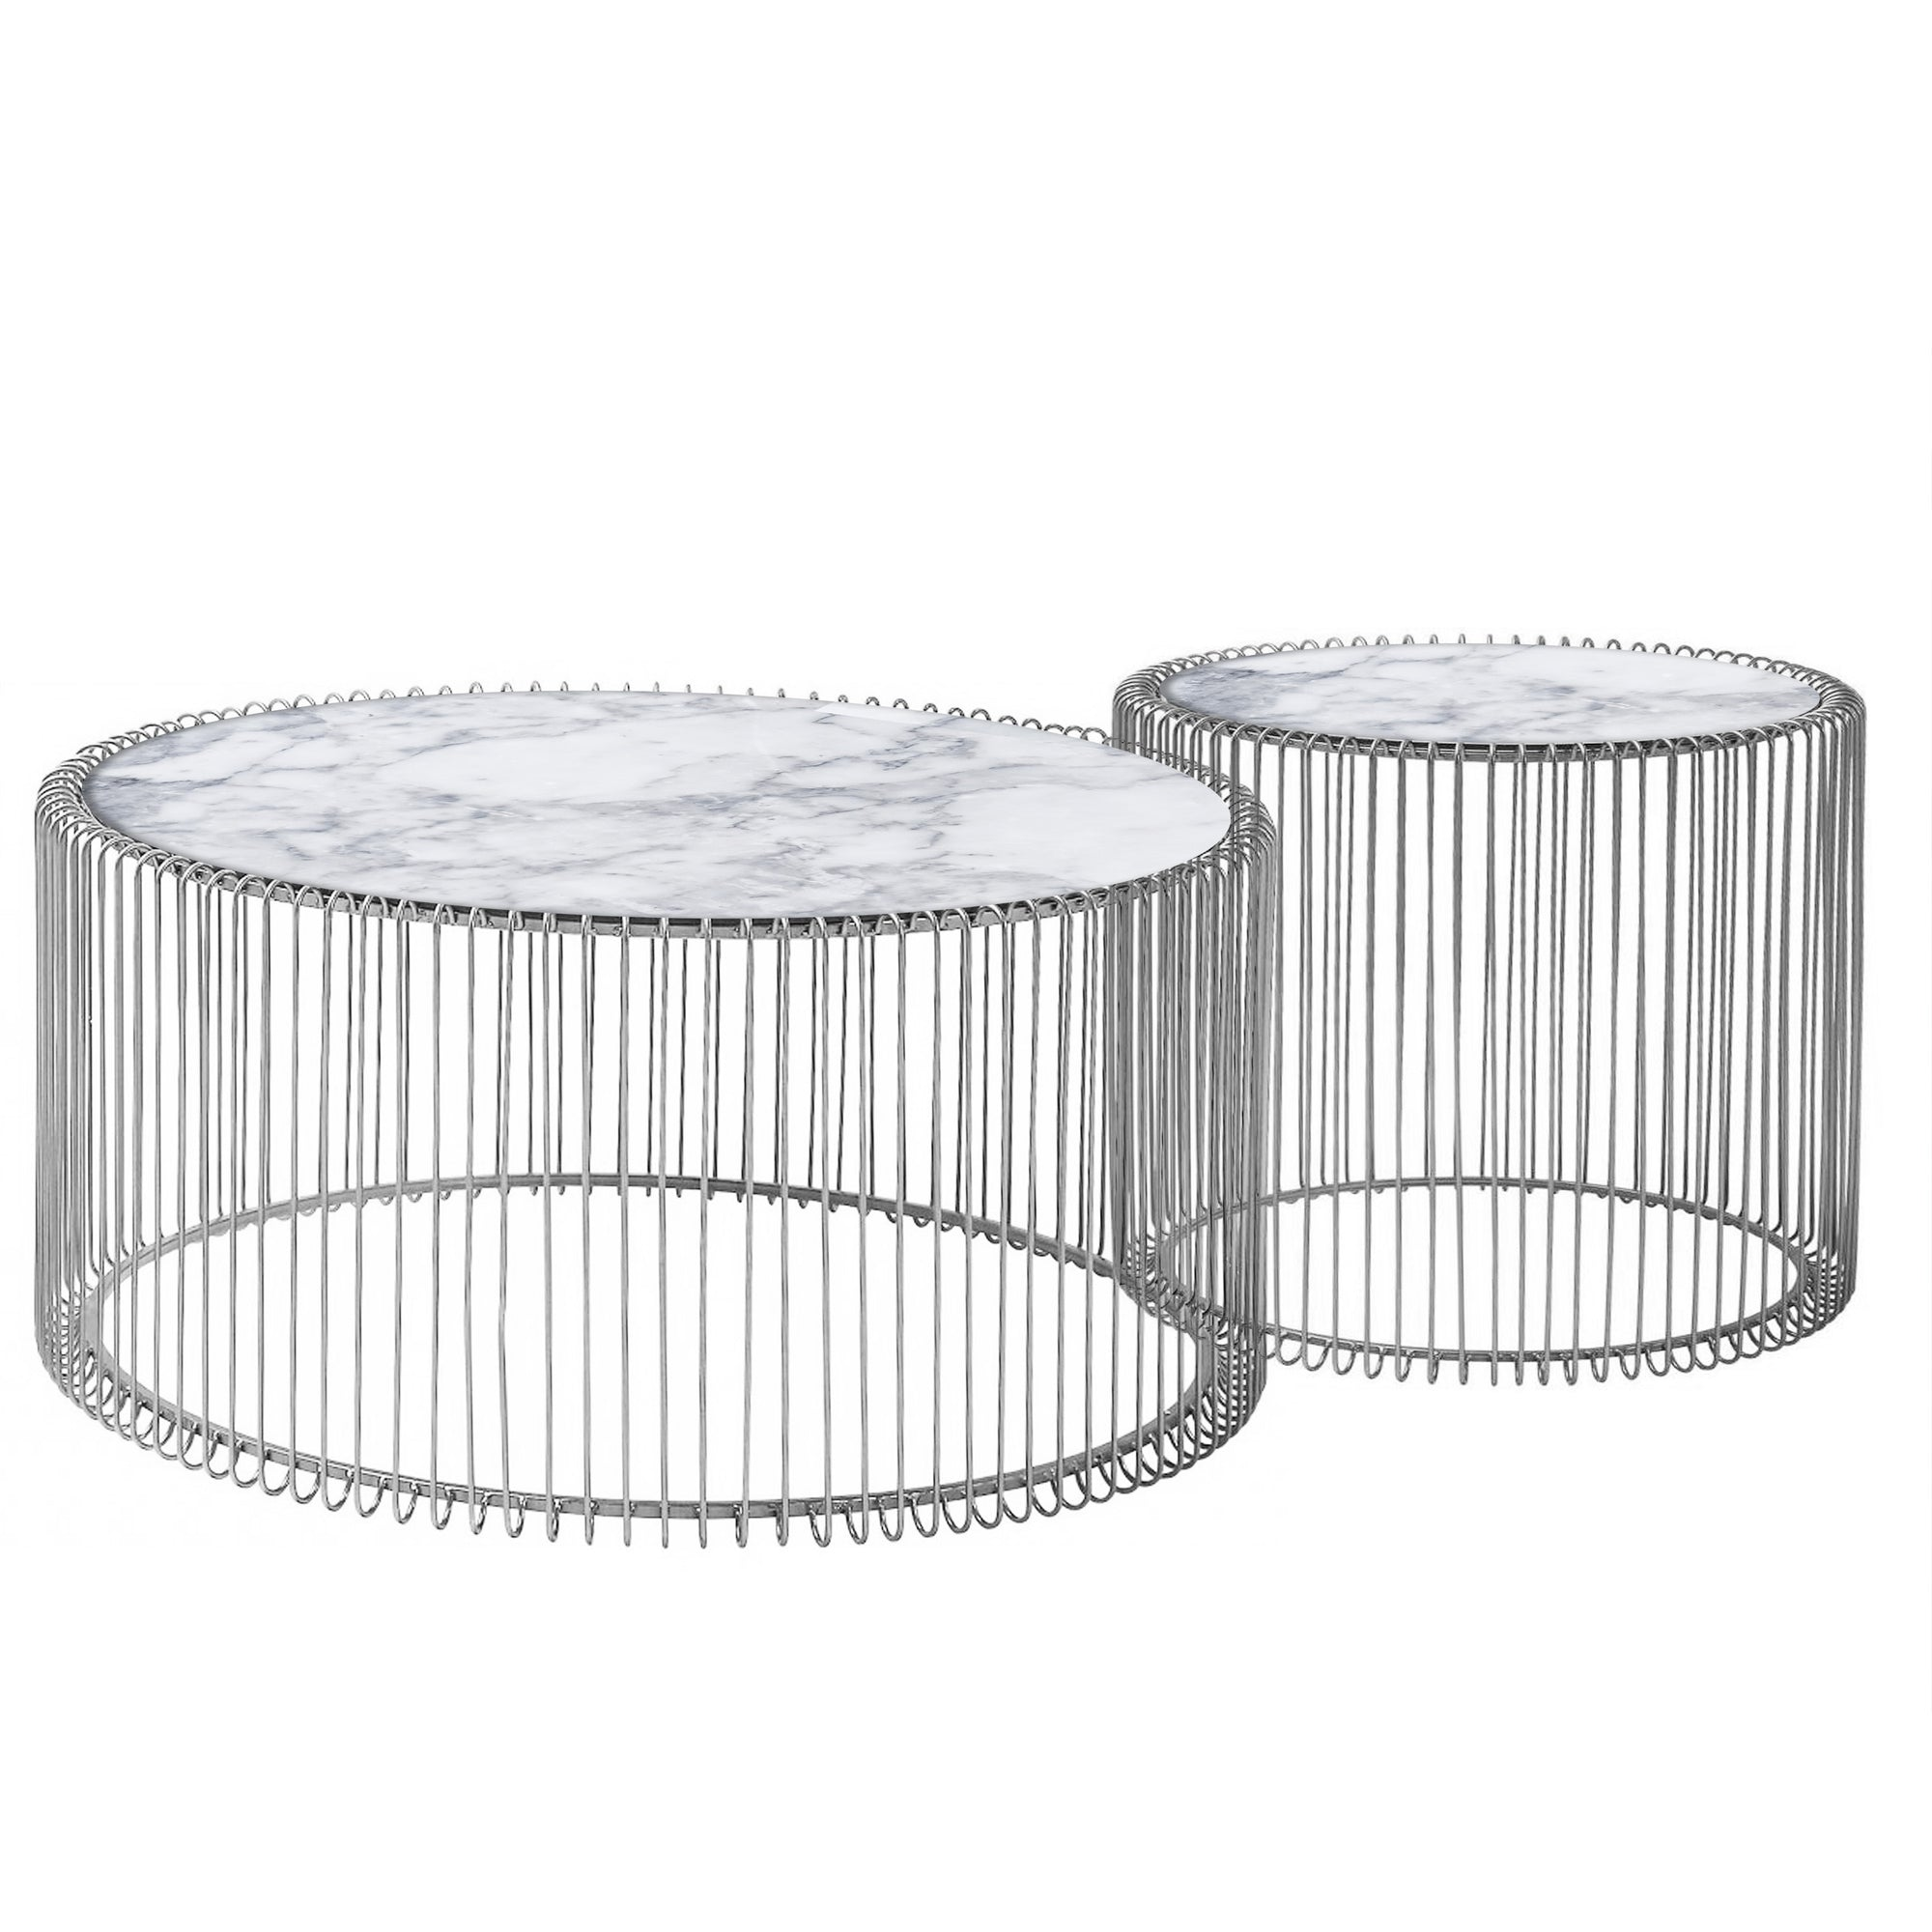 set of 2 Natural Marble & Stainless Steel Table BP8808 S-C 45+90 -  طقم من 2 طاولة رخام طبيعي وستانلس ستيل - Shop Online Furniture and Home Decor Store in Dubai, UAE at ebarza